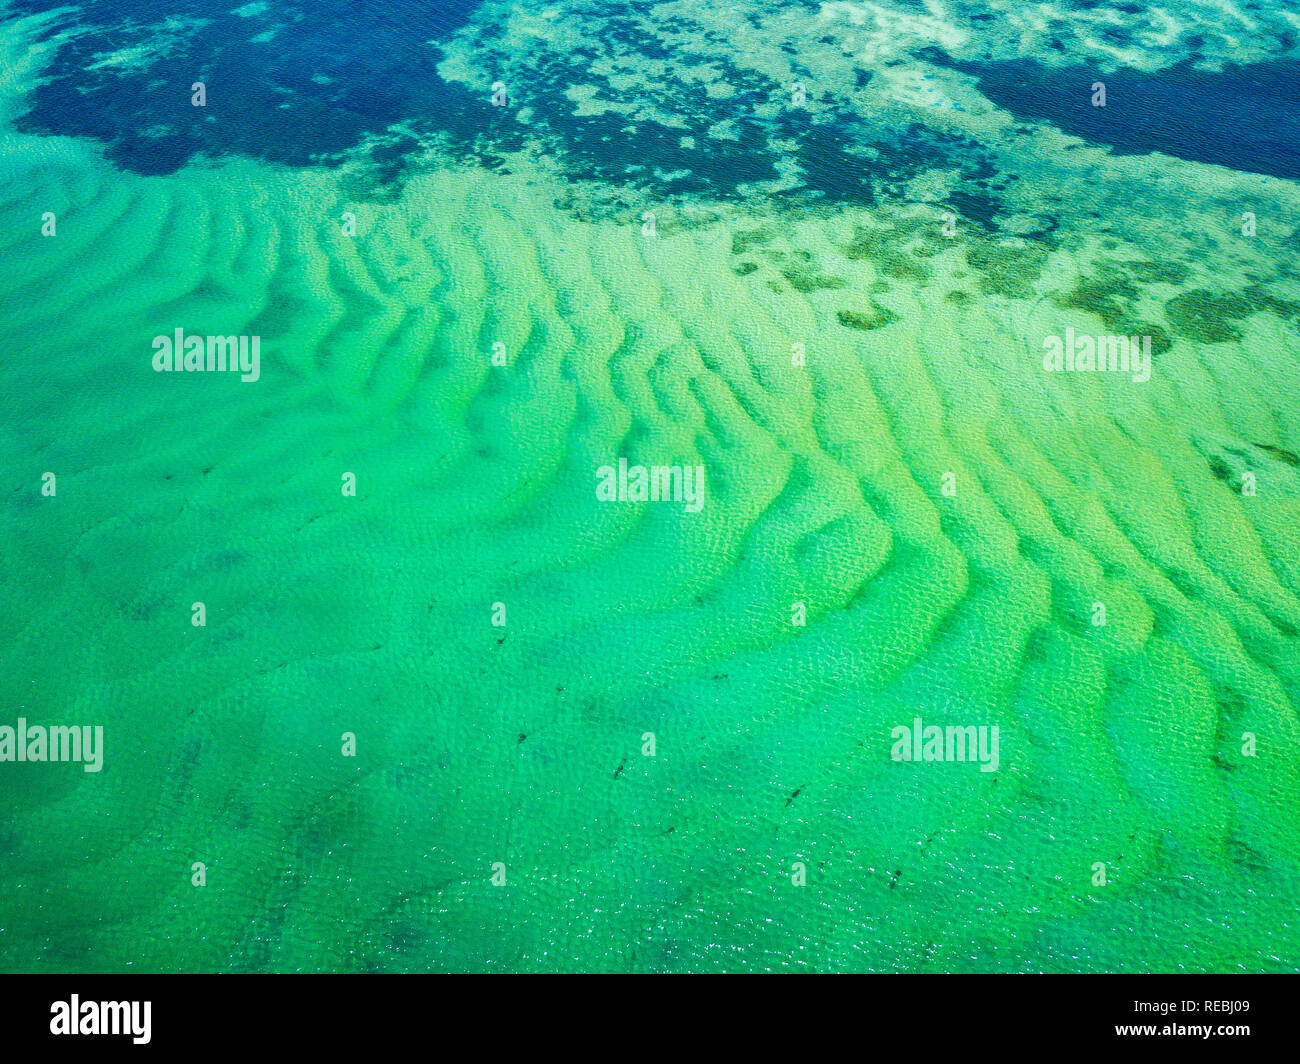 Incredible patterns and textures left by the sand with turquoise water glistening above. Pumicestone Passage, Sunshine Coast, QLD, Australia. - Stock Image